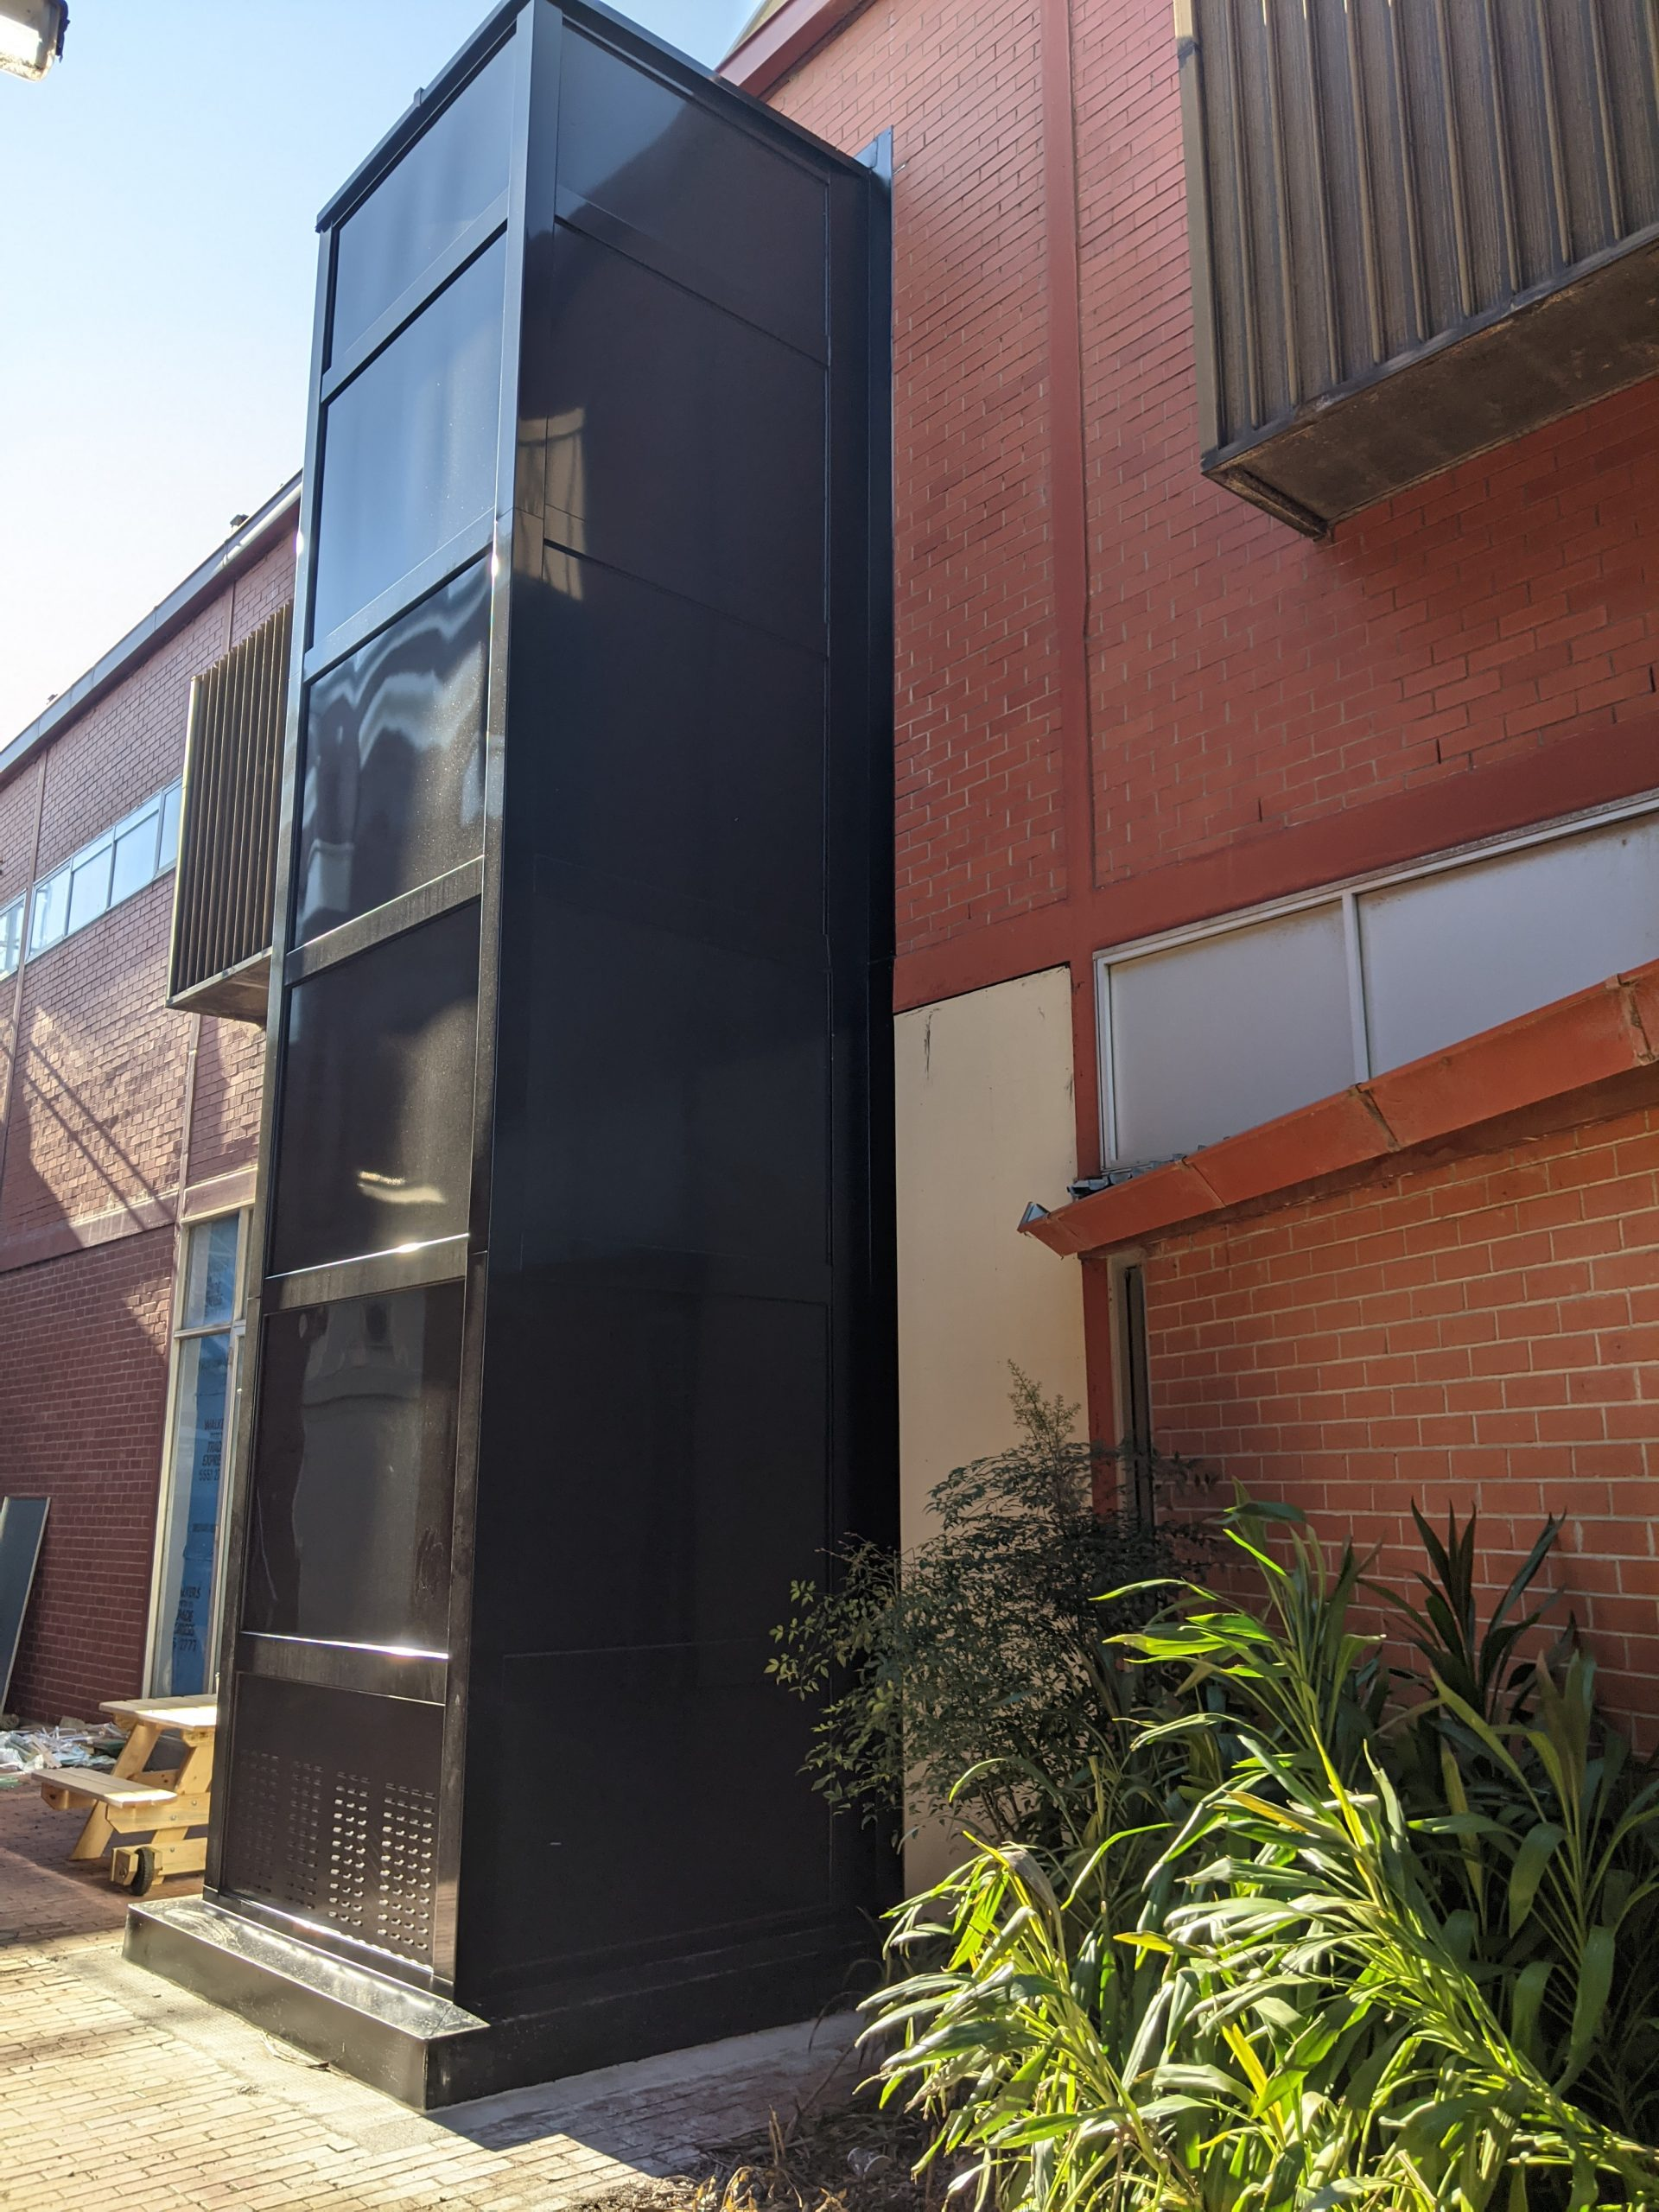 an black metal structure elevator attached to the exterior wall of a building